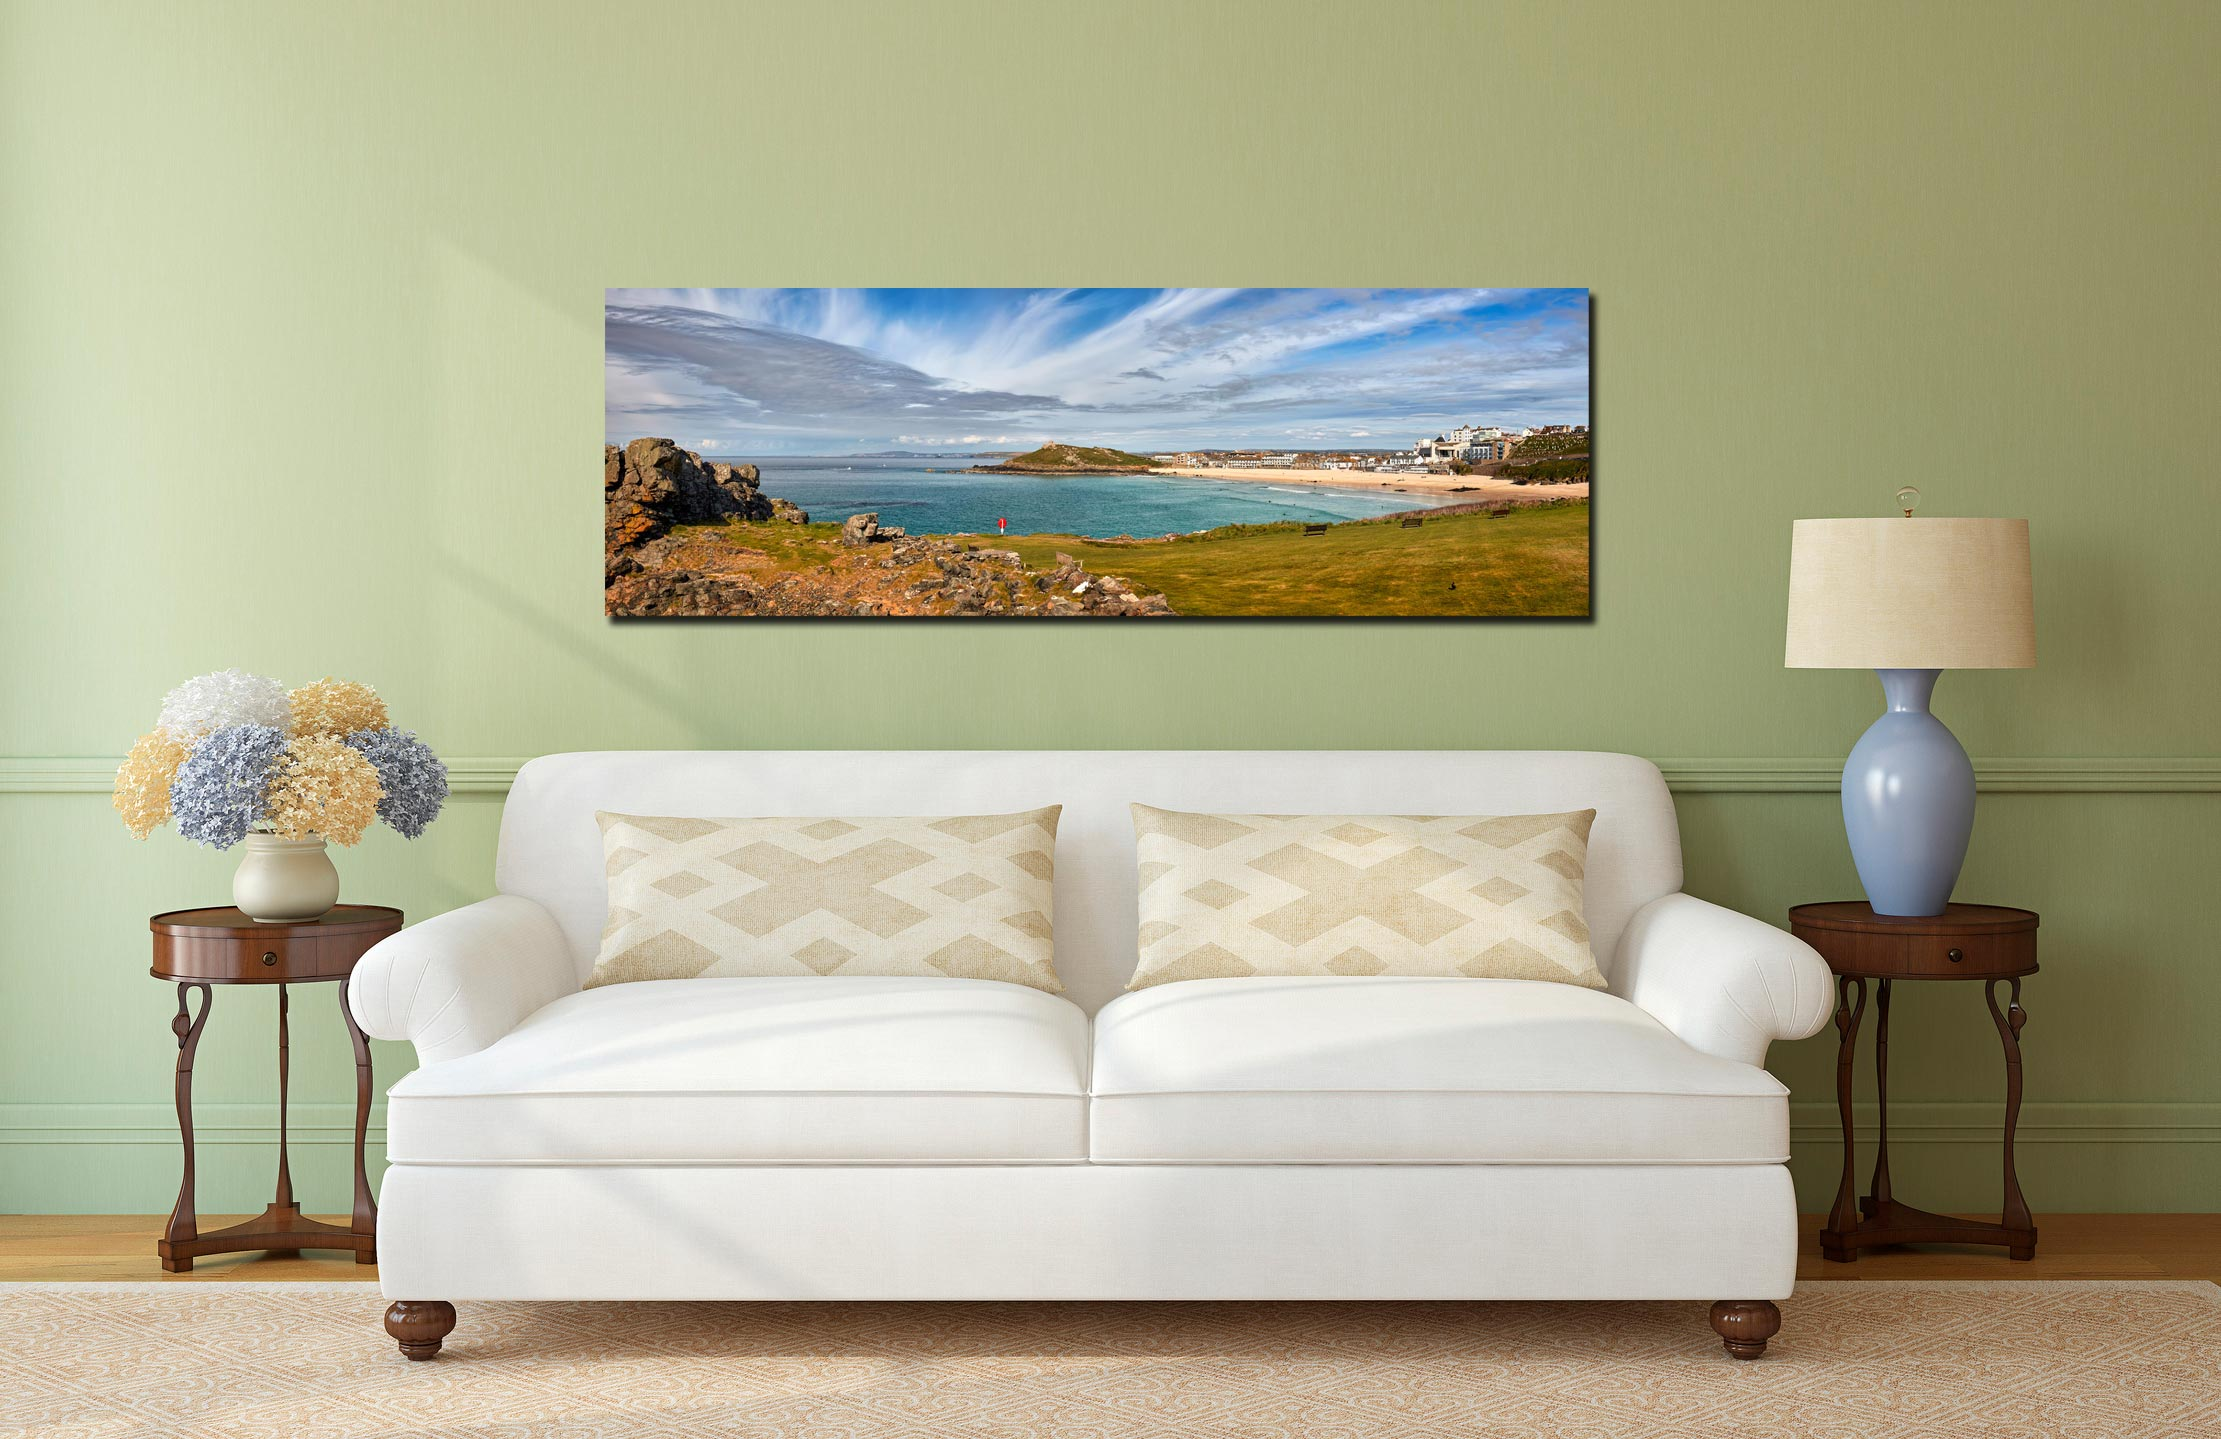 View of St Ives Bay from Mans Head. Left is Porthmeor beach, the Island and Chapel are centre - Print Aluminium Backing With Acrylic Glazing on Wall